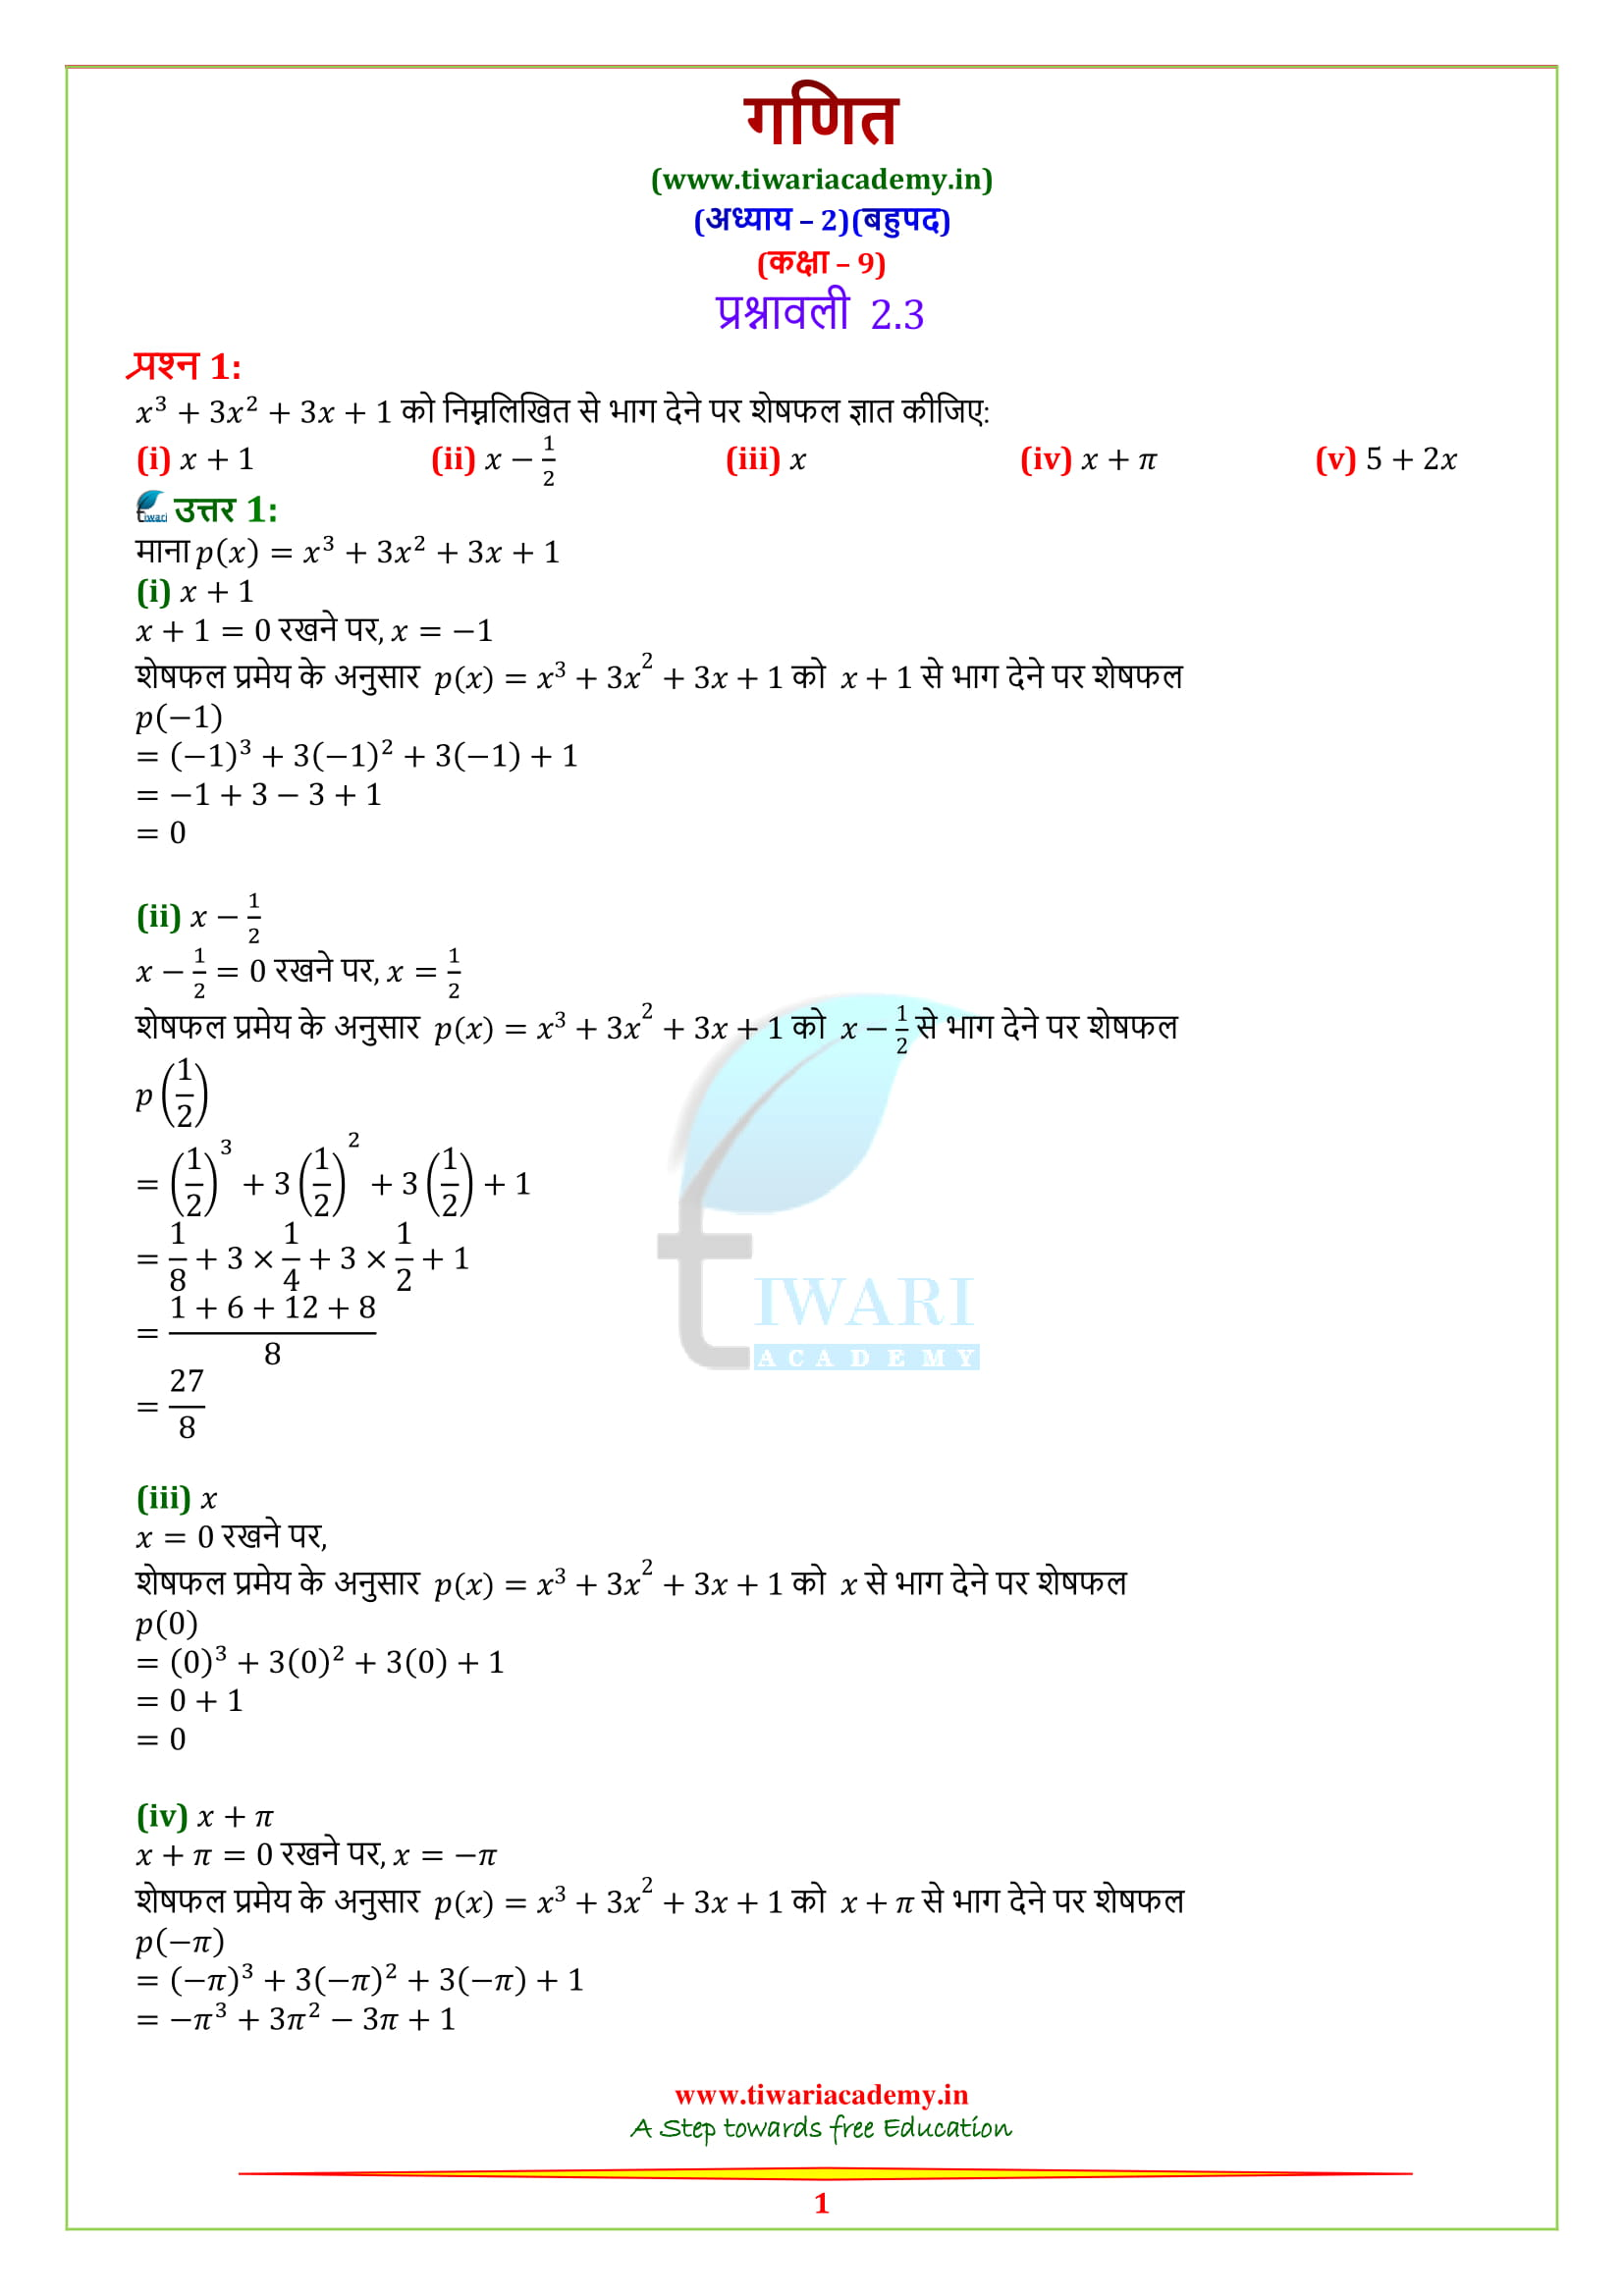 9 Maths exercise 2.3 solutions